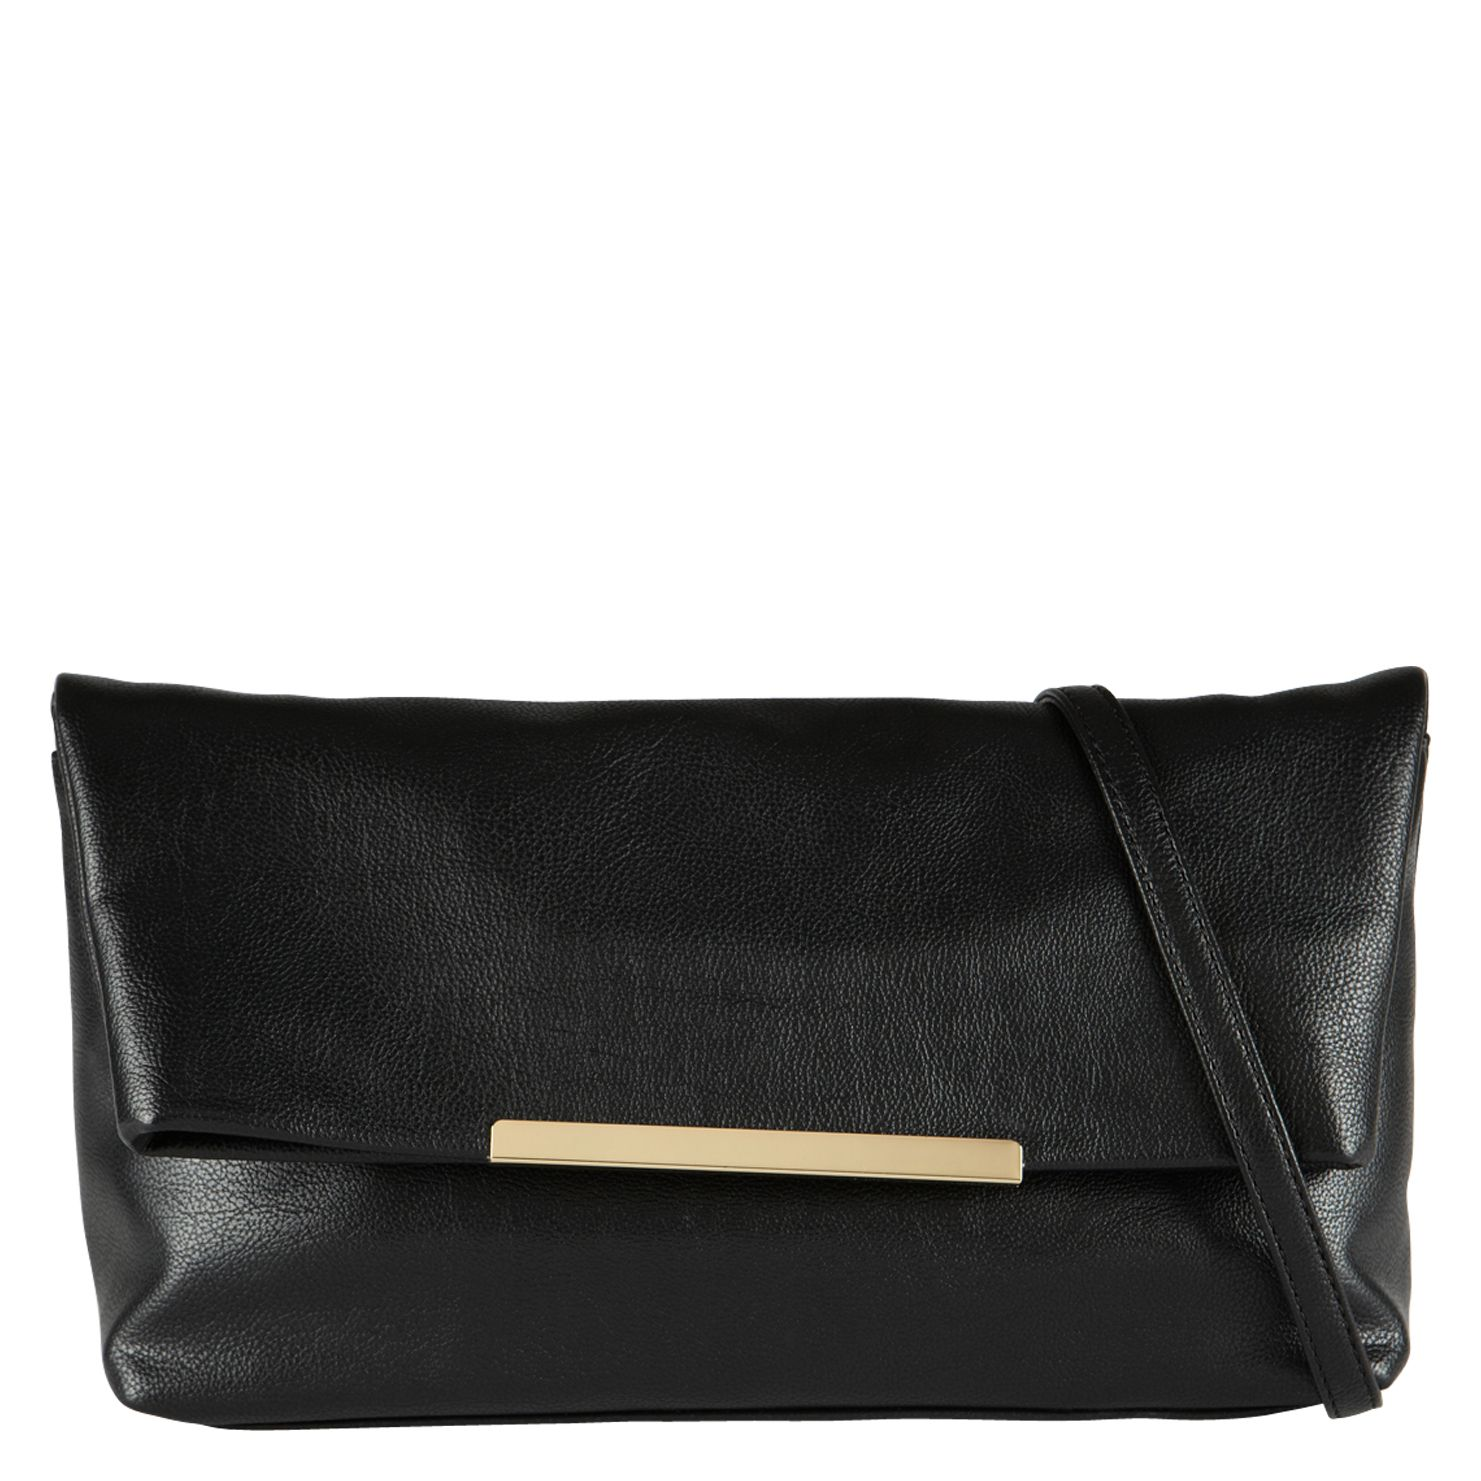 Teakell clutch bag